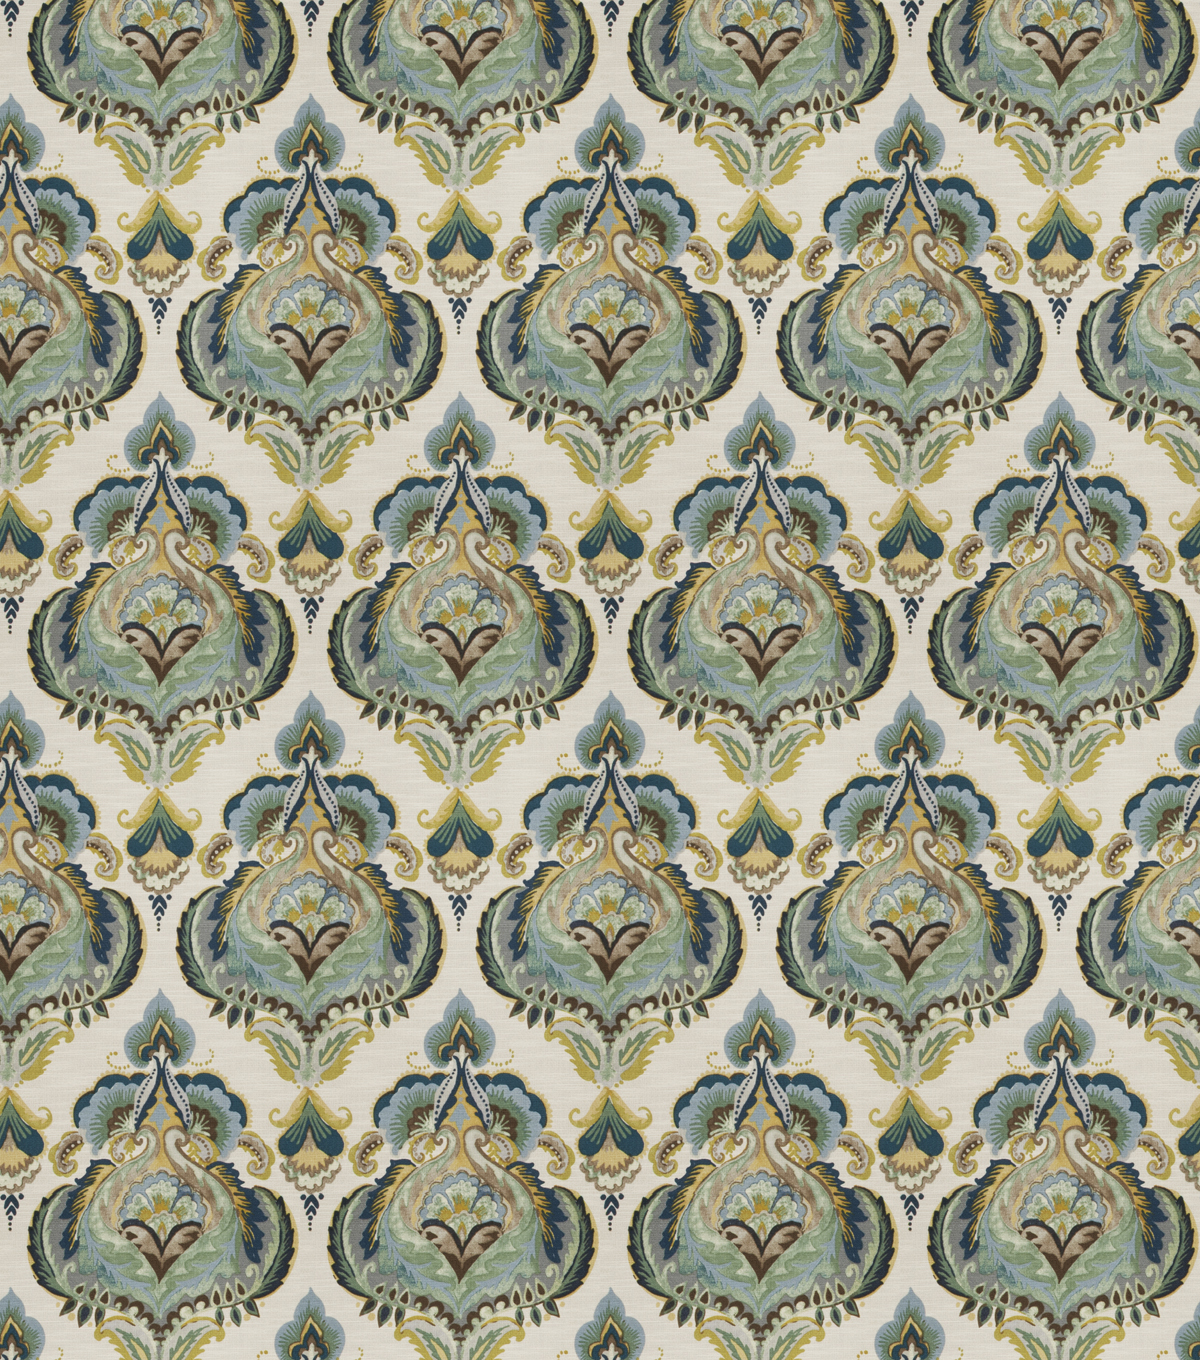 Smc Designs Upholstery Fabric-Conductor/ Orion